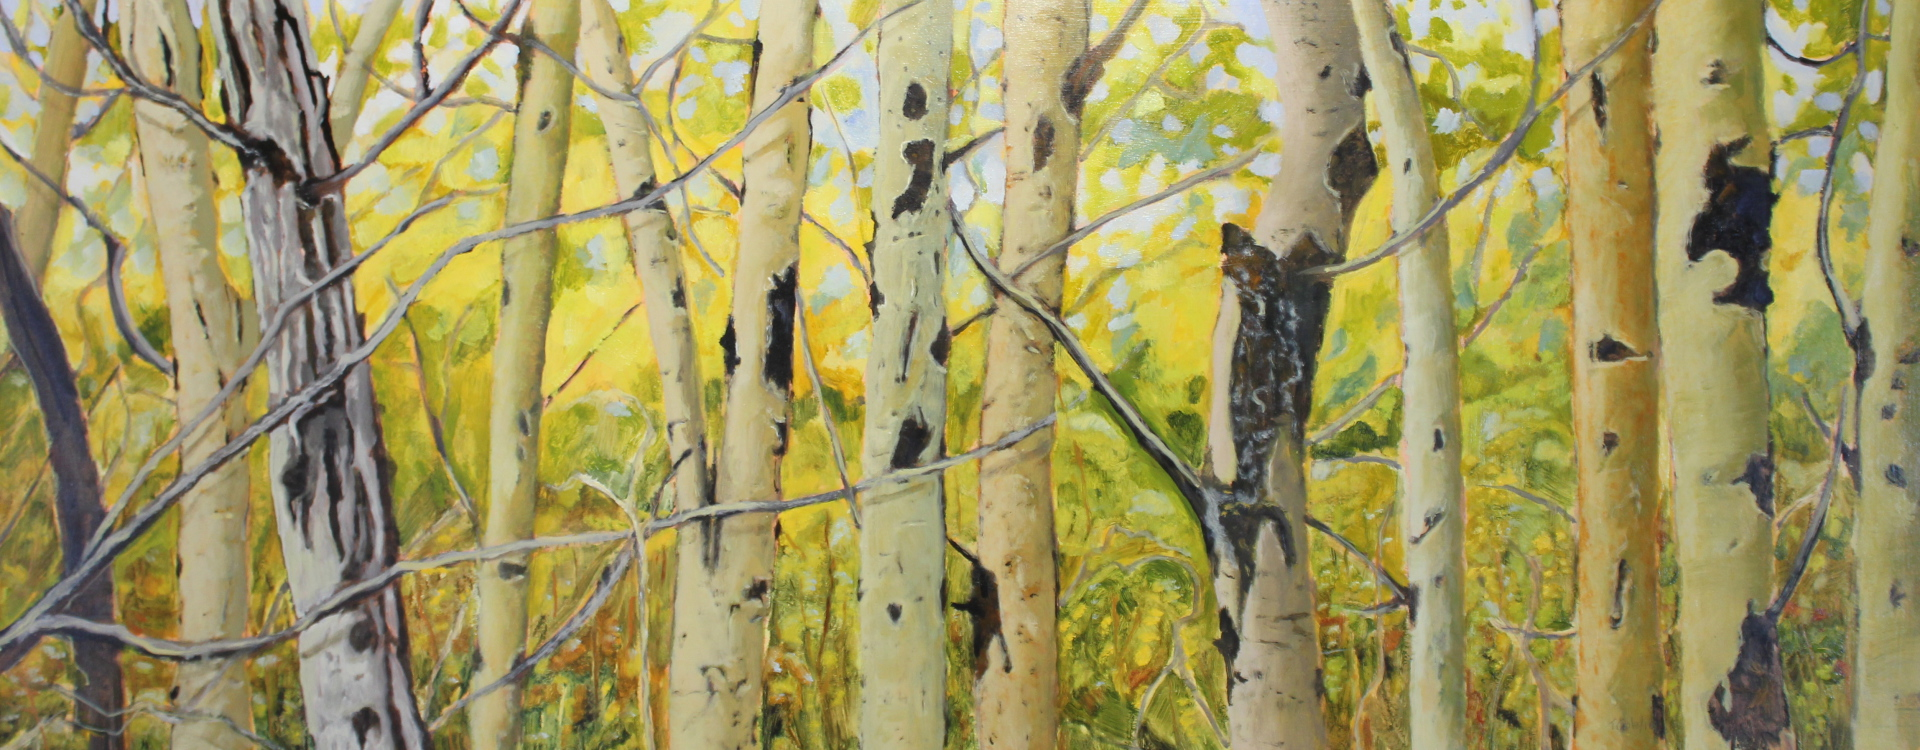 SPRING ASPENS I - 24X60 - OIL ON PANEL - 2016